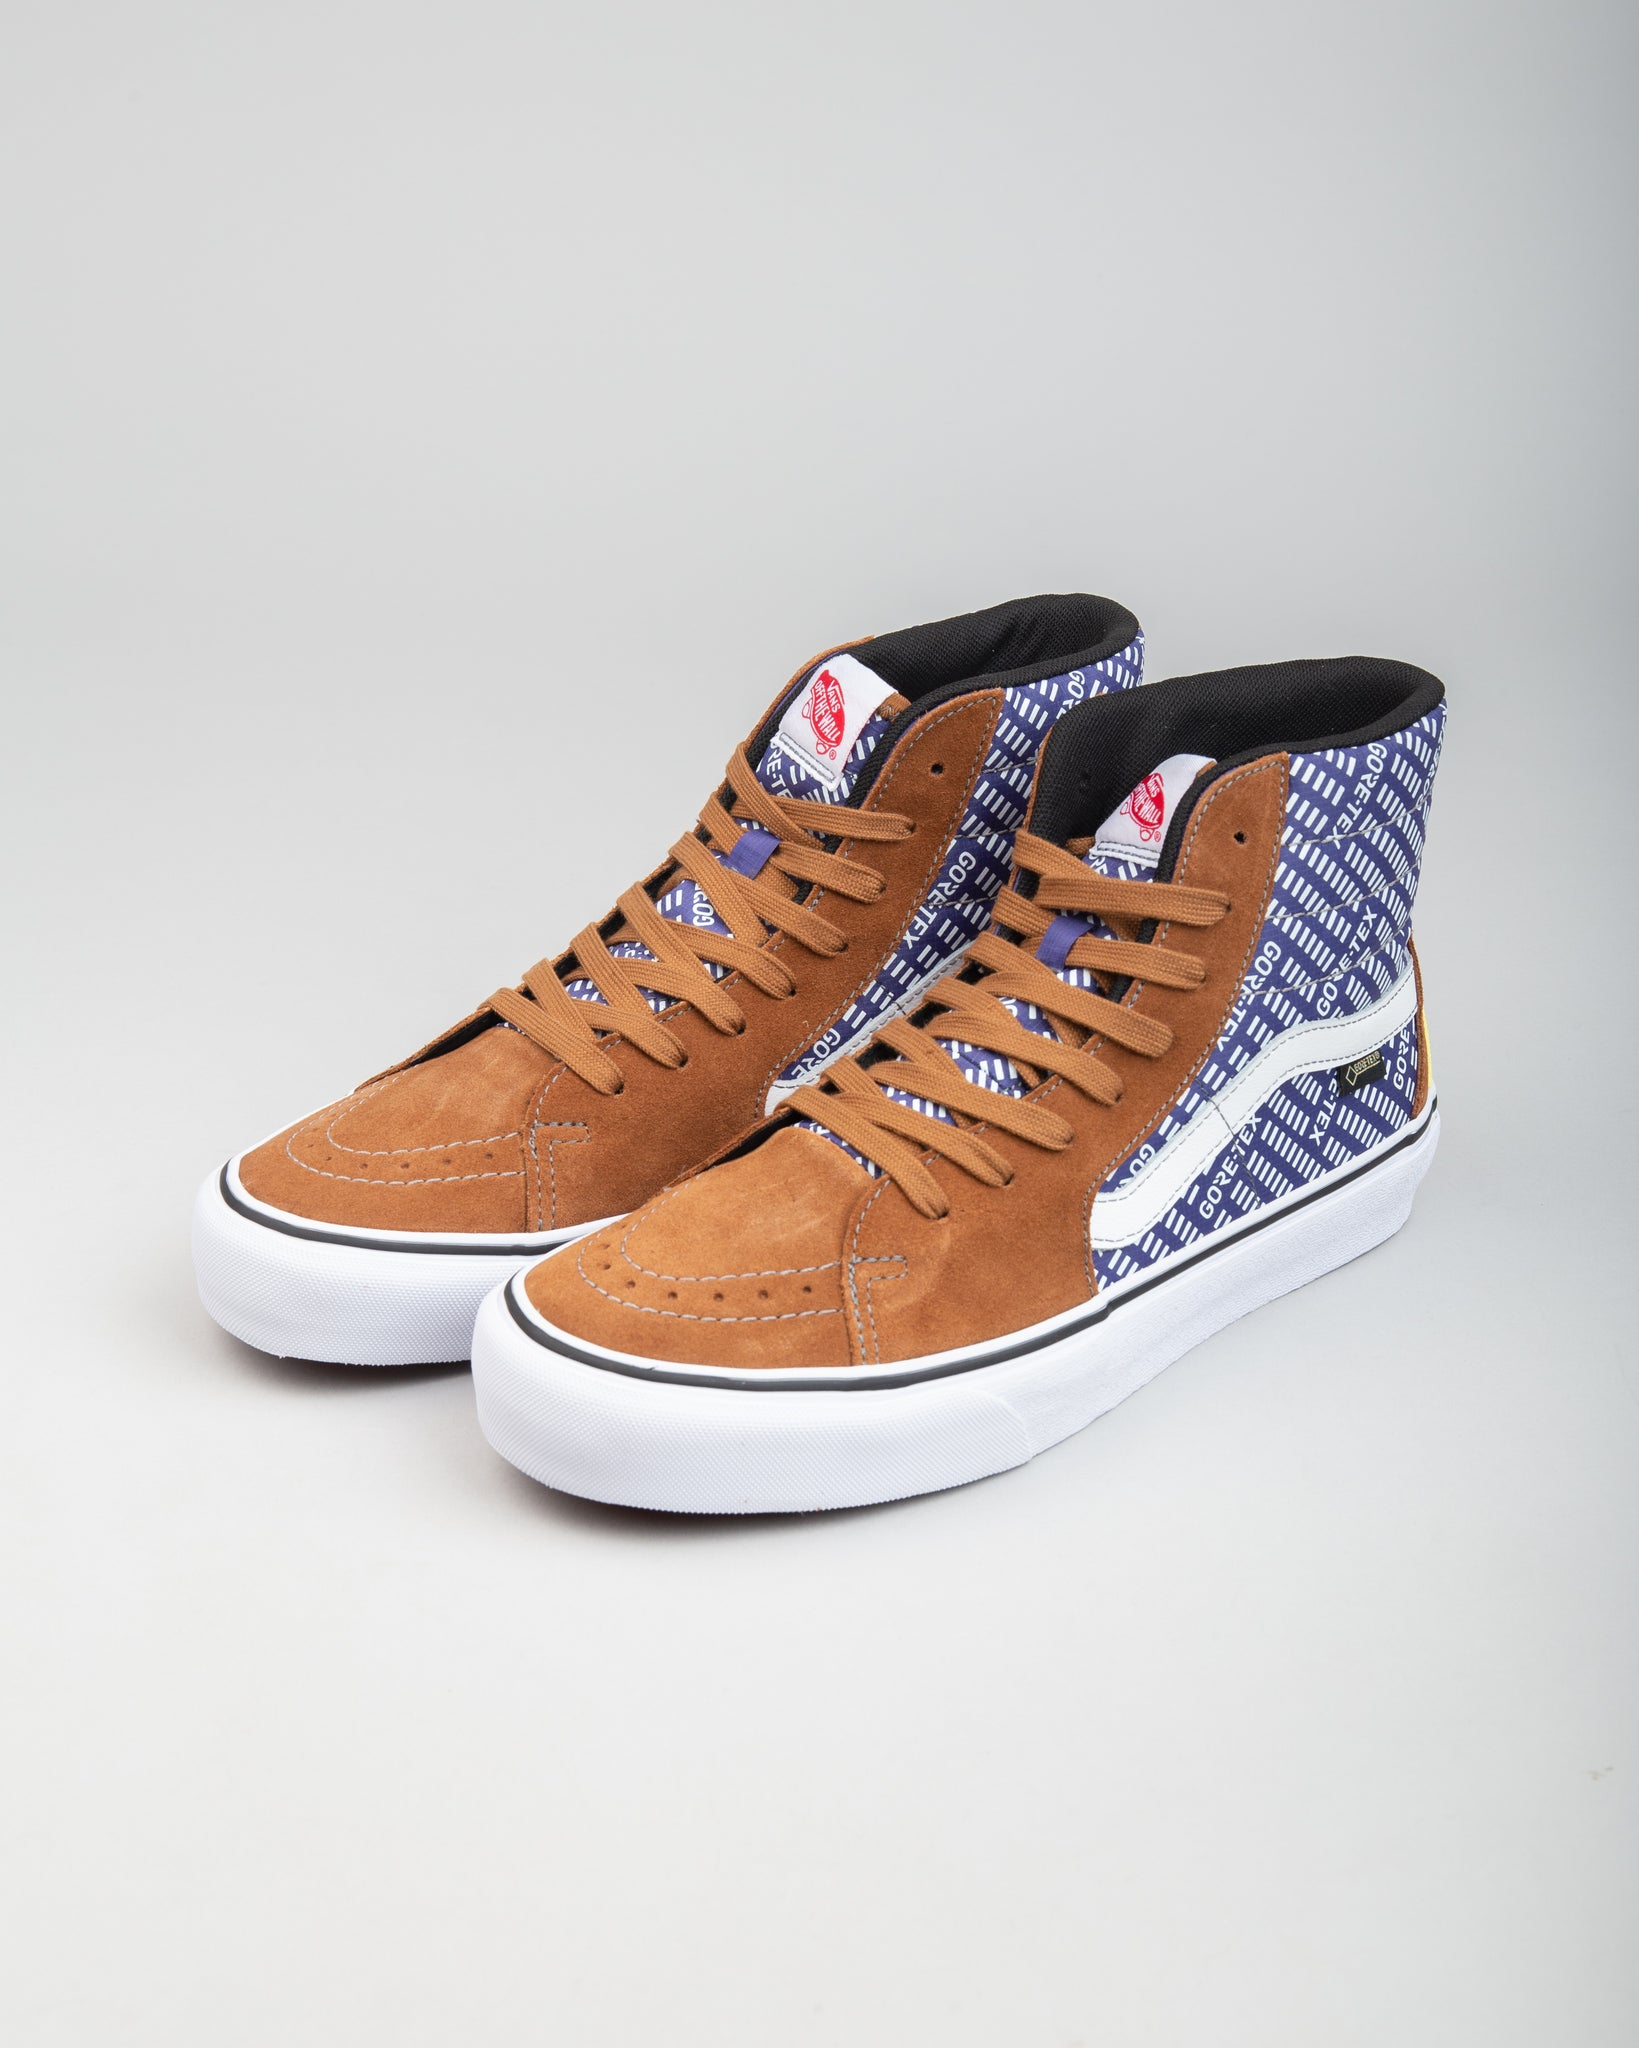 GORE-TEX SK8-HI Brown/Purple